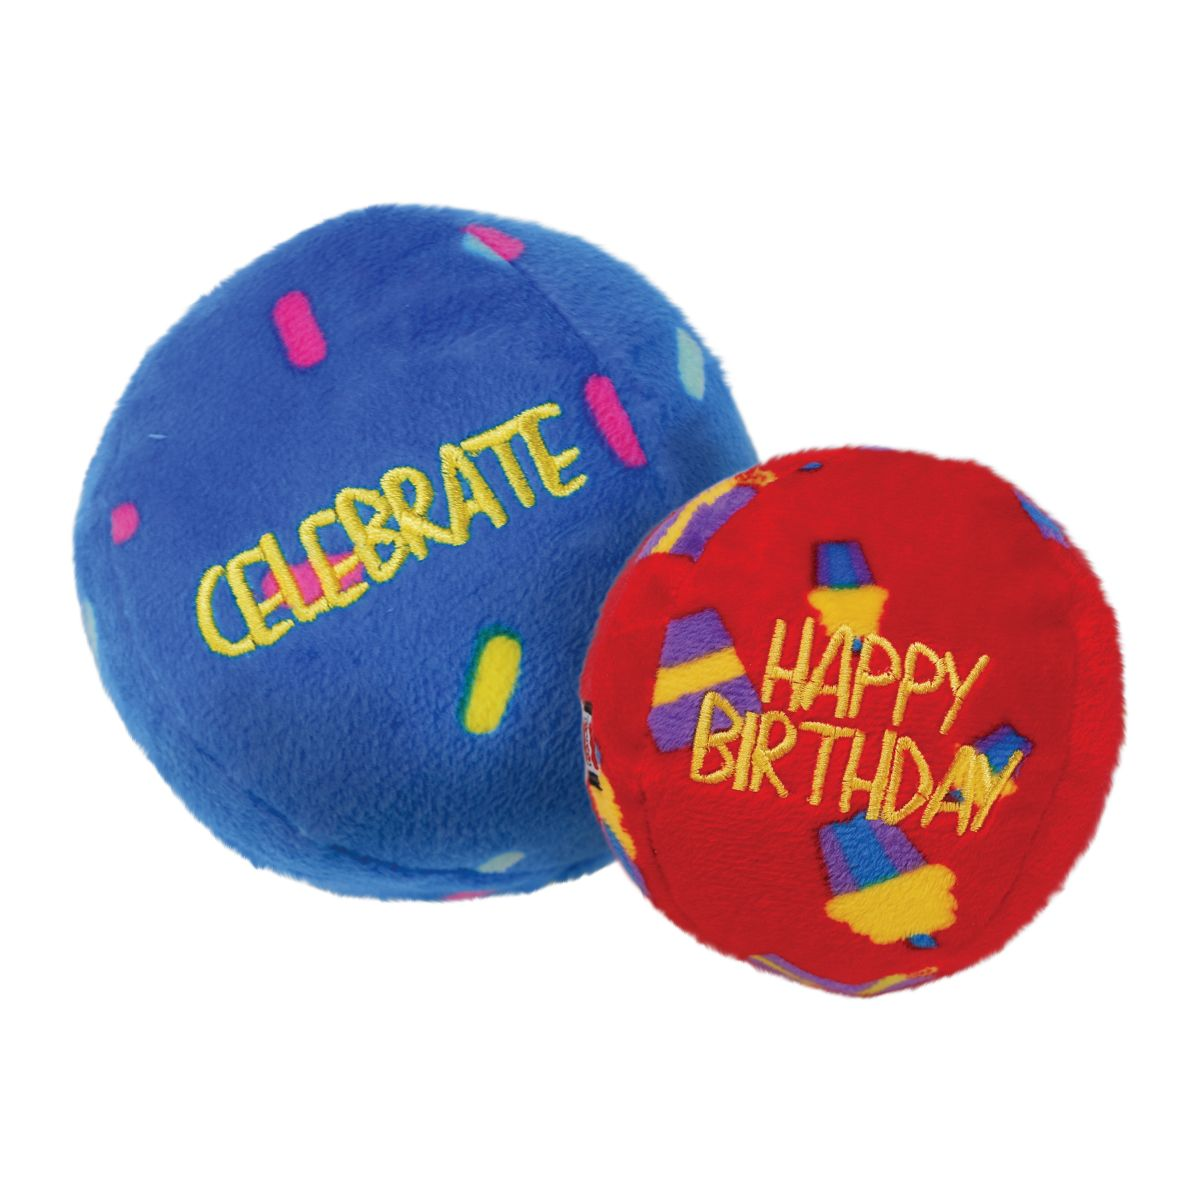 KO OCC.BIRTHDAY BALLS 2-PACK M N 00001